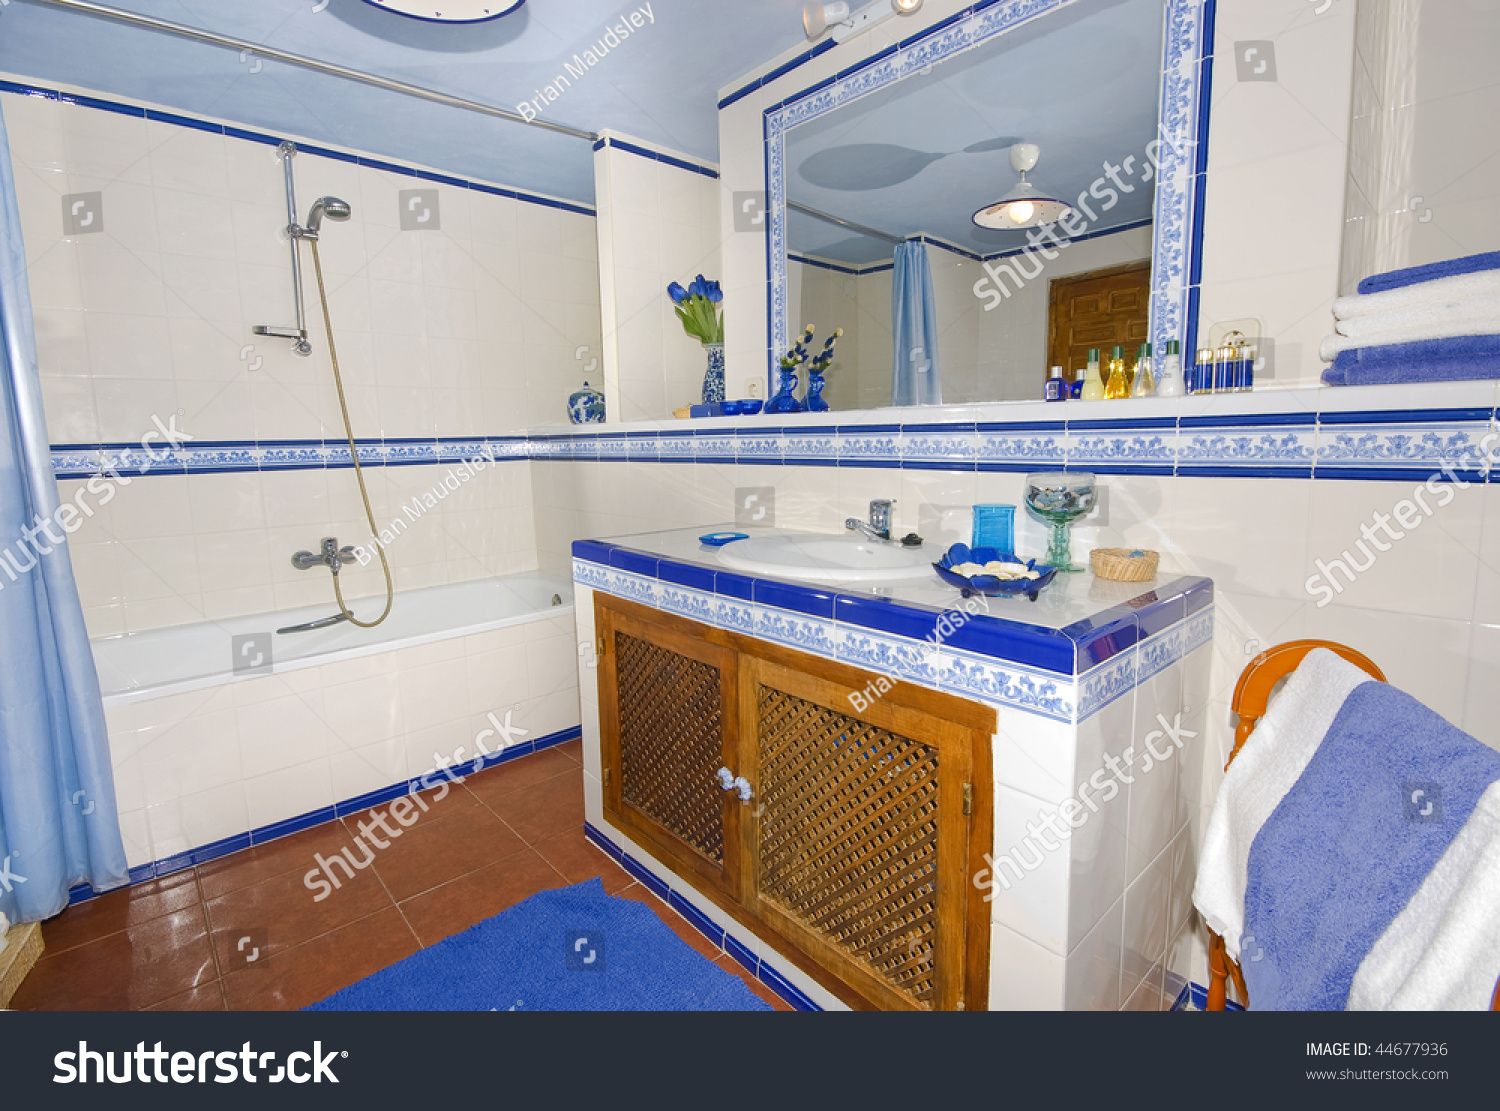 Rustic Spanish Country Style Bathroom White Stock Photo 44677936 ...